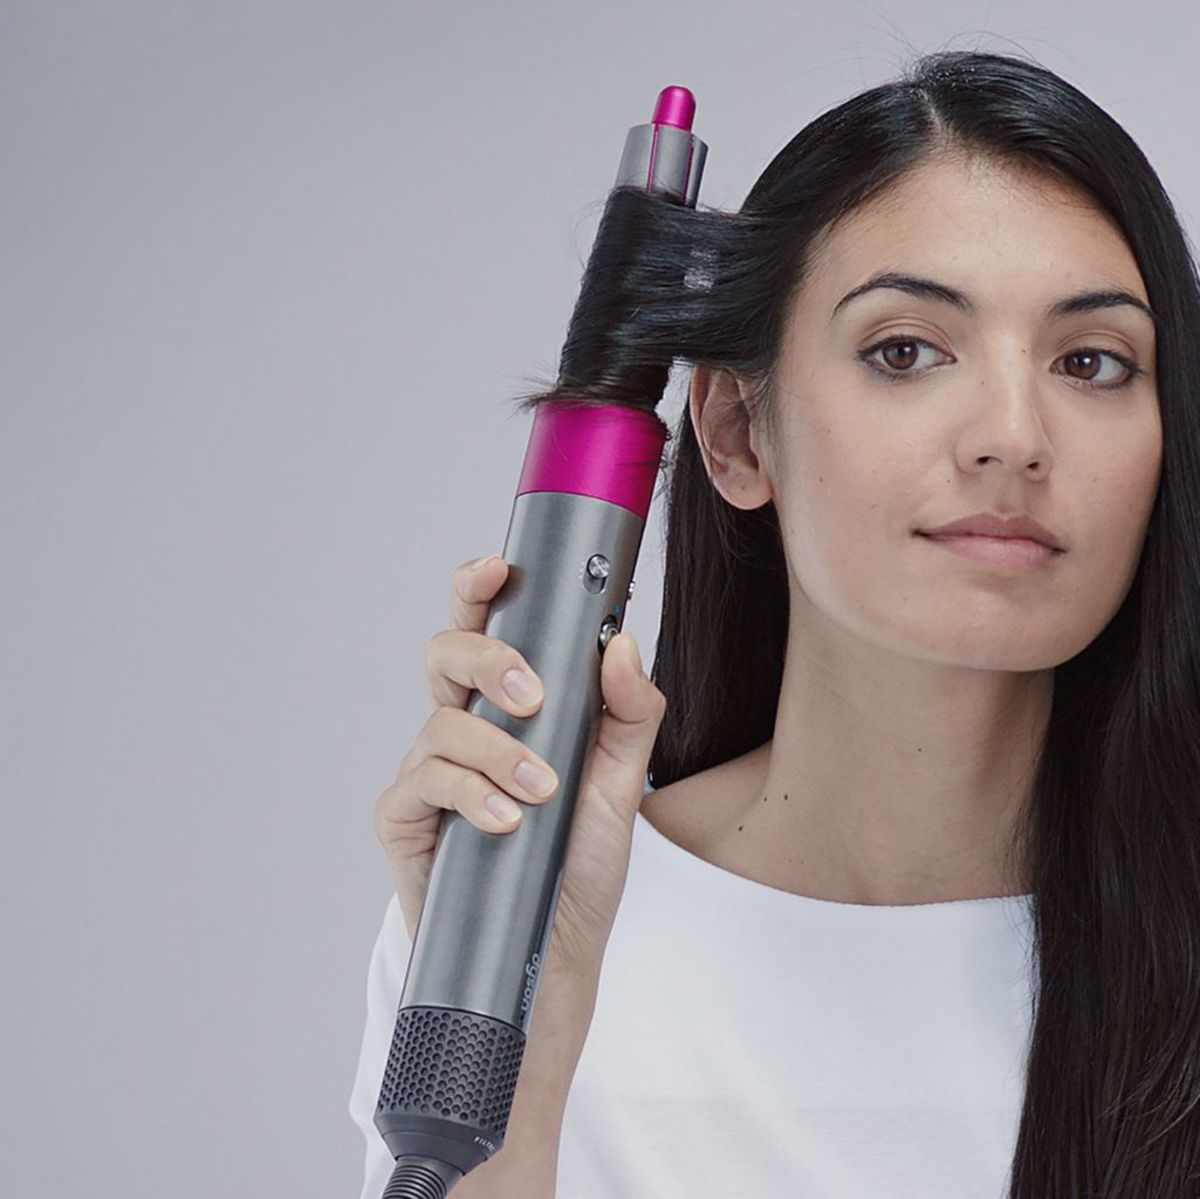 dyson-airwrap-model-image-curl-barrel